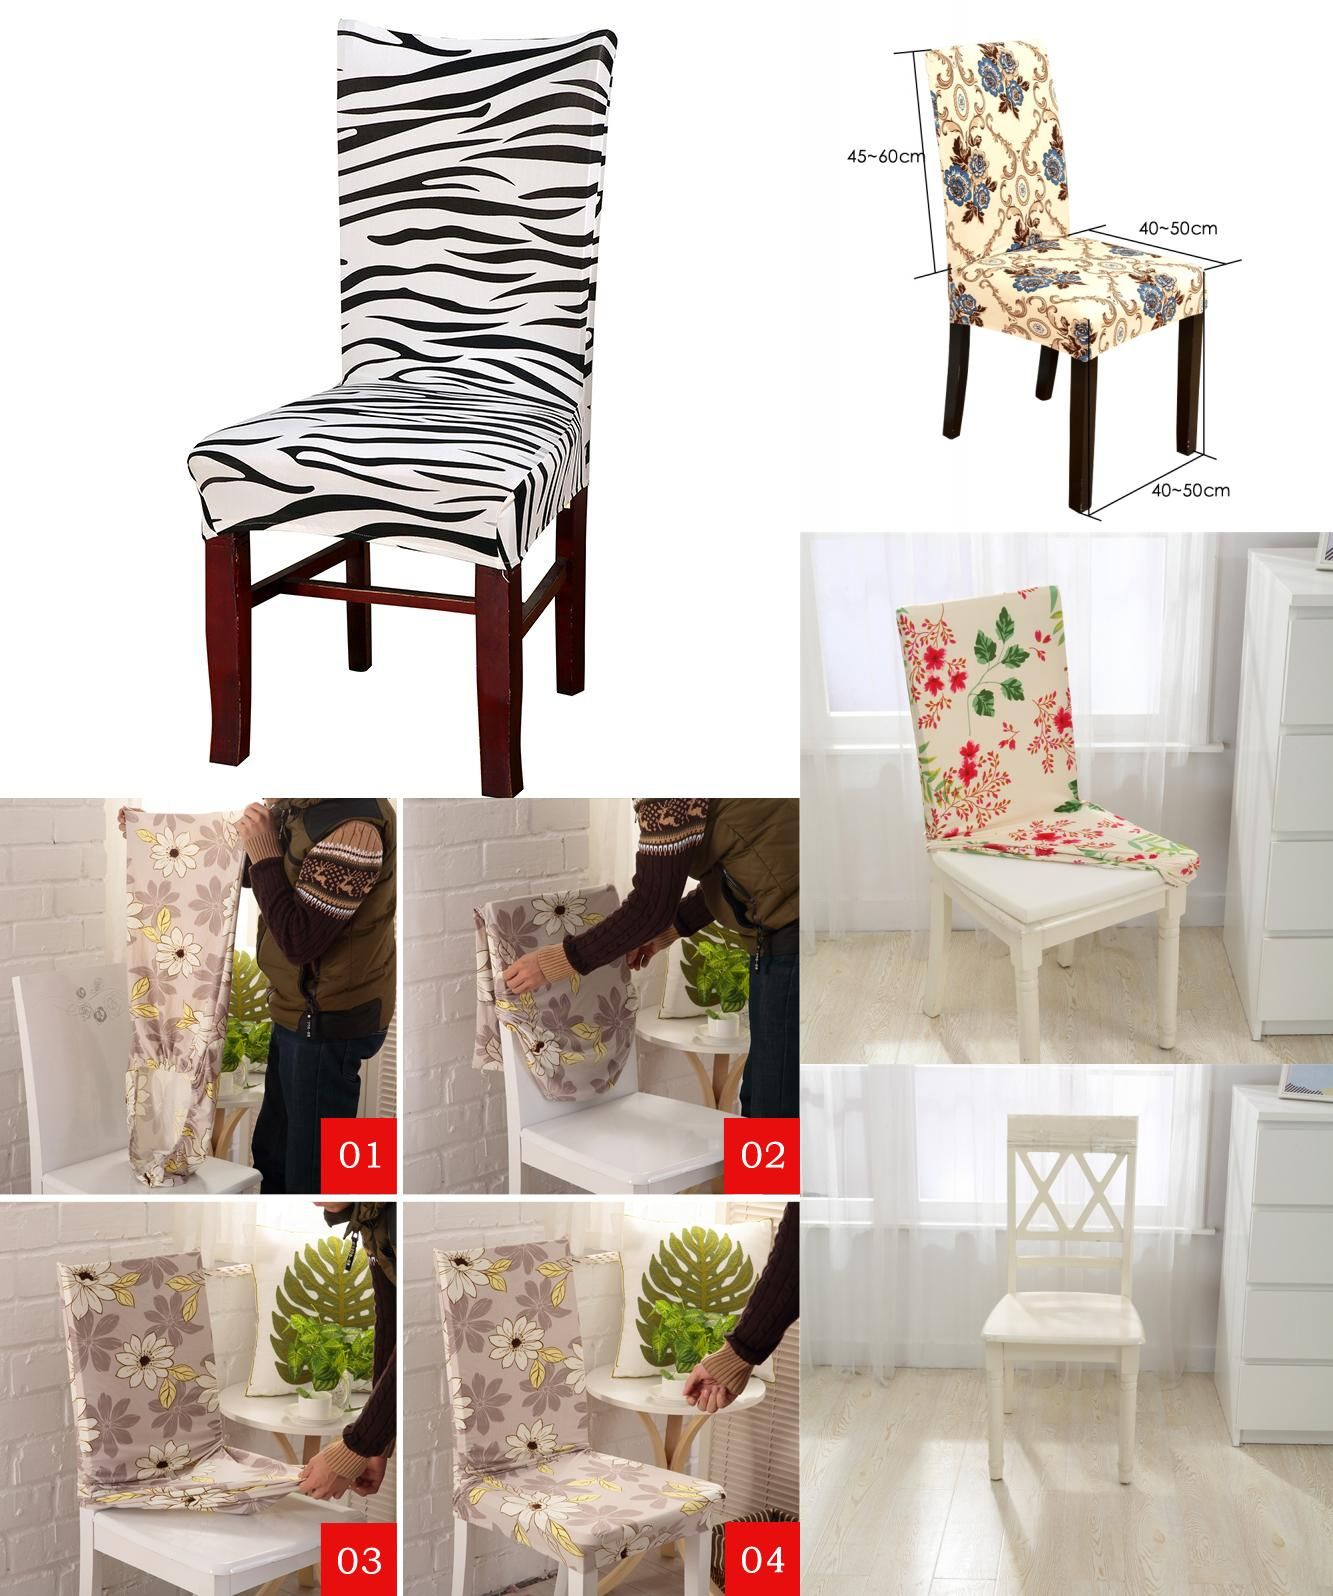 Visit to Buy] Polyester Spandex Dining Room Fabric Chair Covers